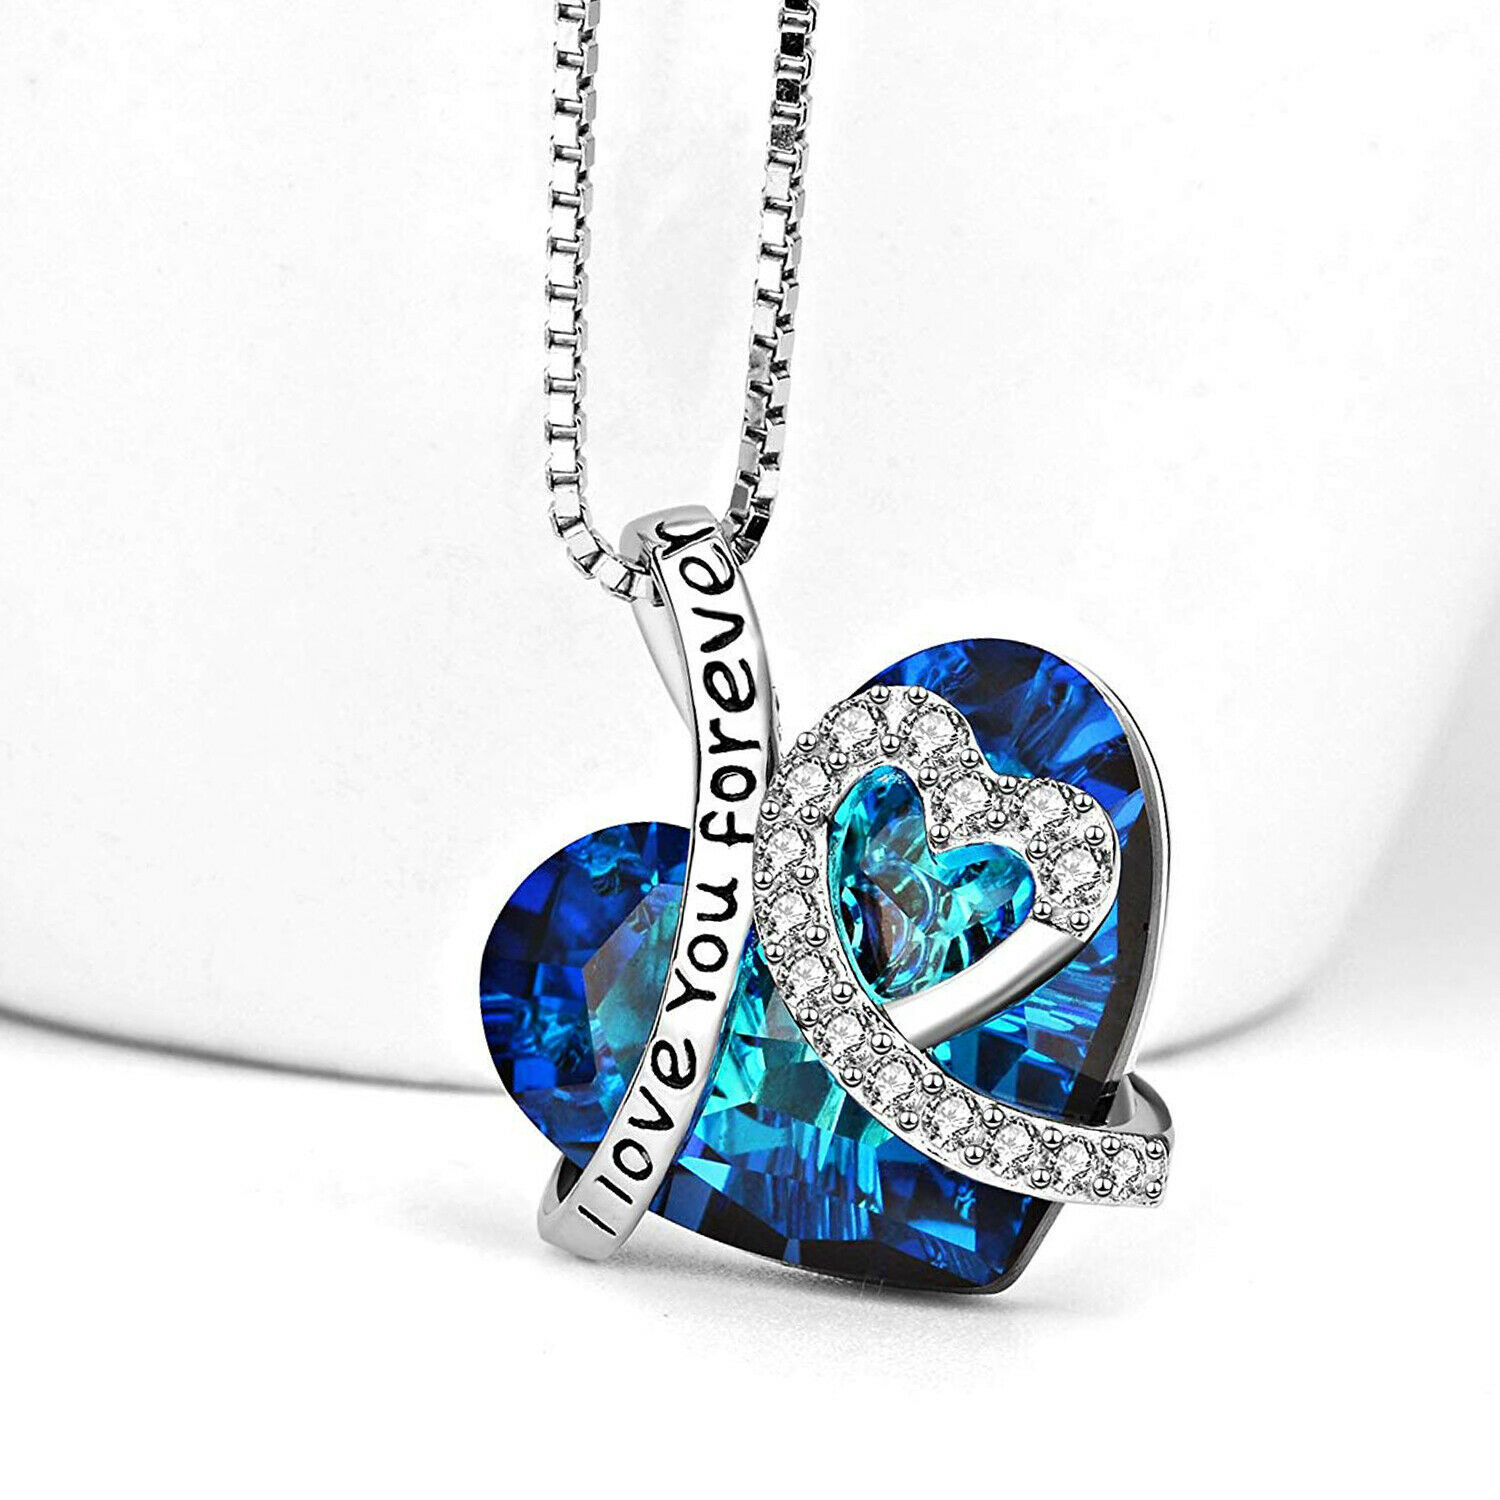 Sterling Silver Necklace *BERMUDA BLUE* 10-28mm Heart Crystals from Swarovski®